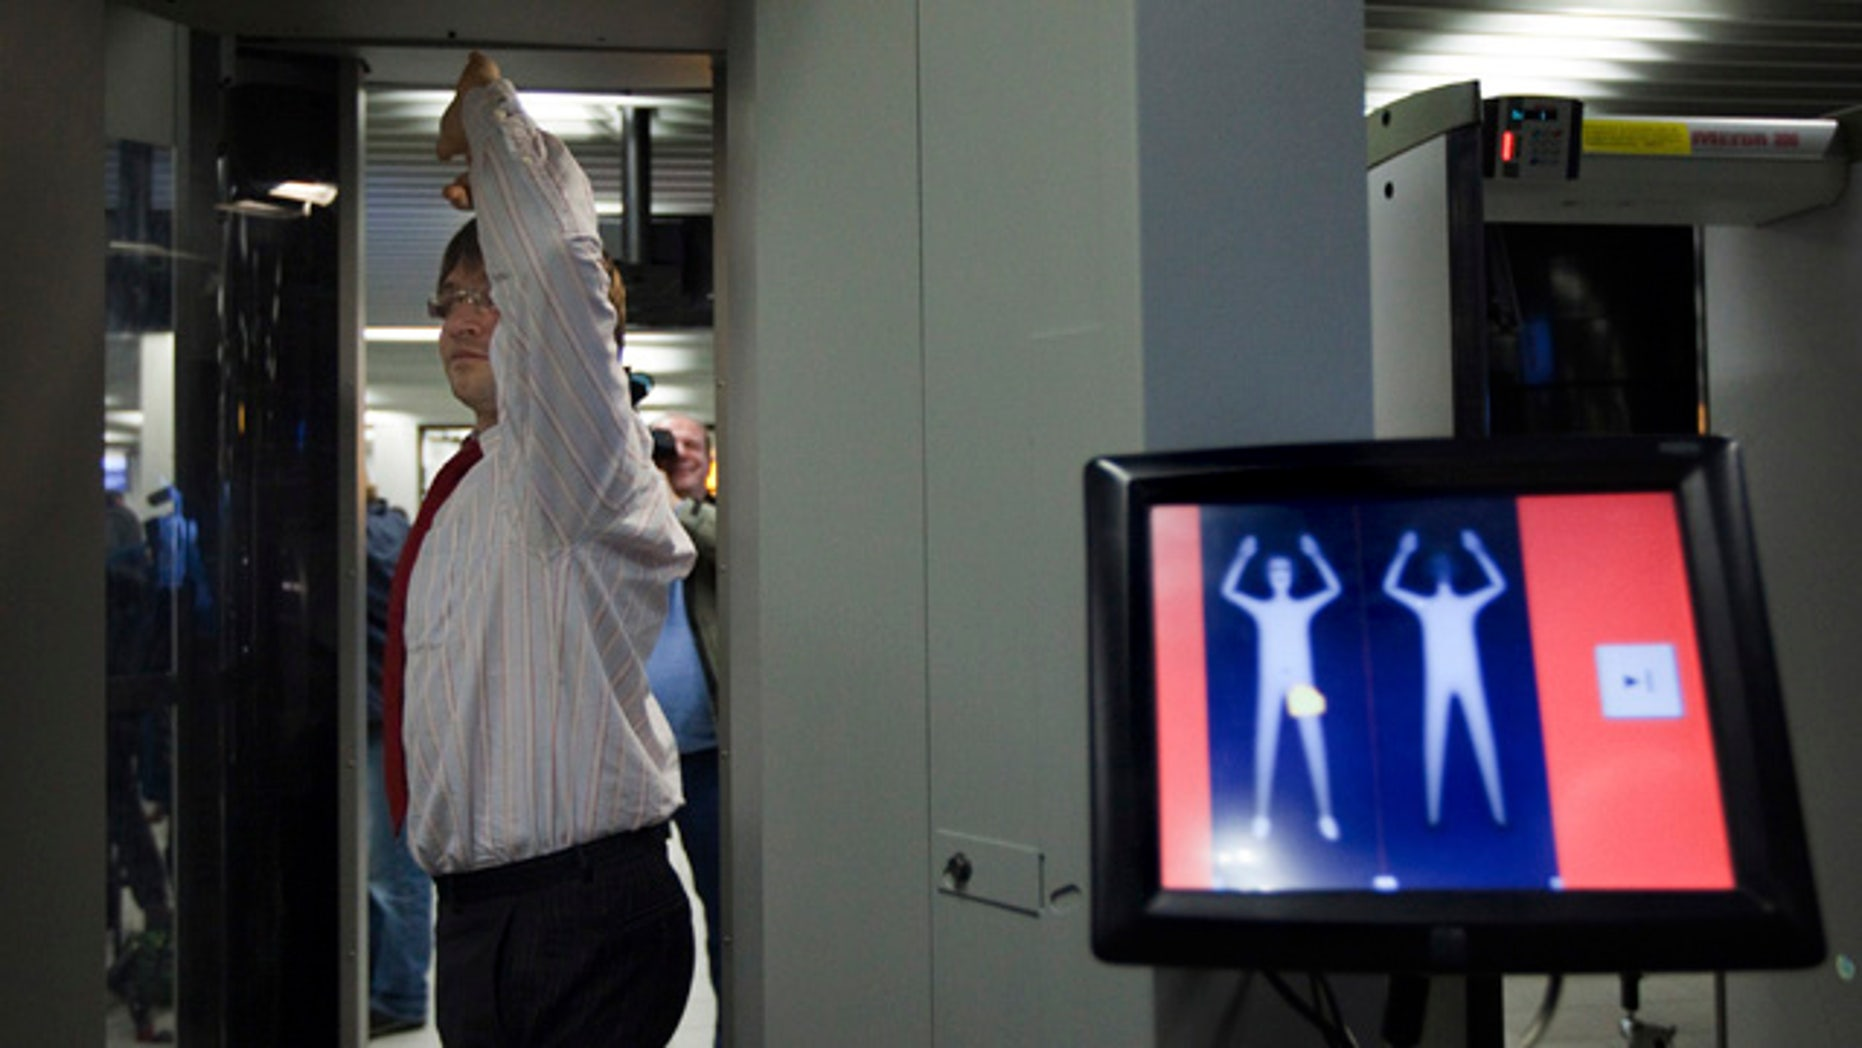 """An employee of Schiphol stands inside a body scanner during a demonstration at a press briefing at Schiphol airport, Netherlands. The Netherlands announced Wednesday, Dec. 30, it will immediately begin using full body scanners for flights heading to the United States, issuing a report that called the failed Christmas Day airline bombing a """"professional"""" terror attack."""